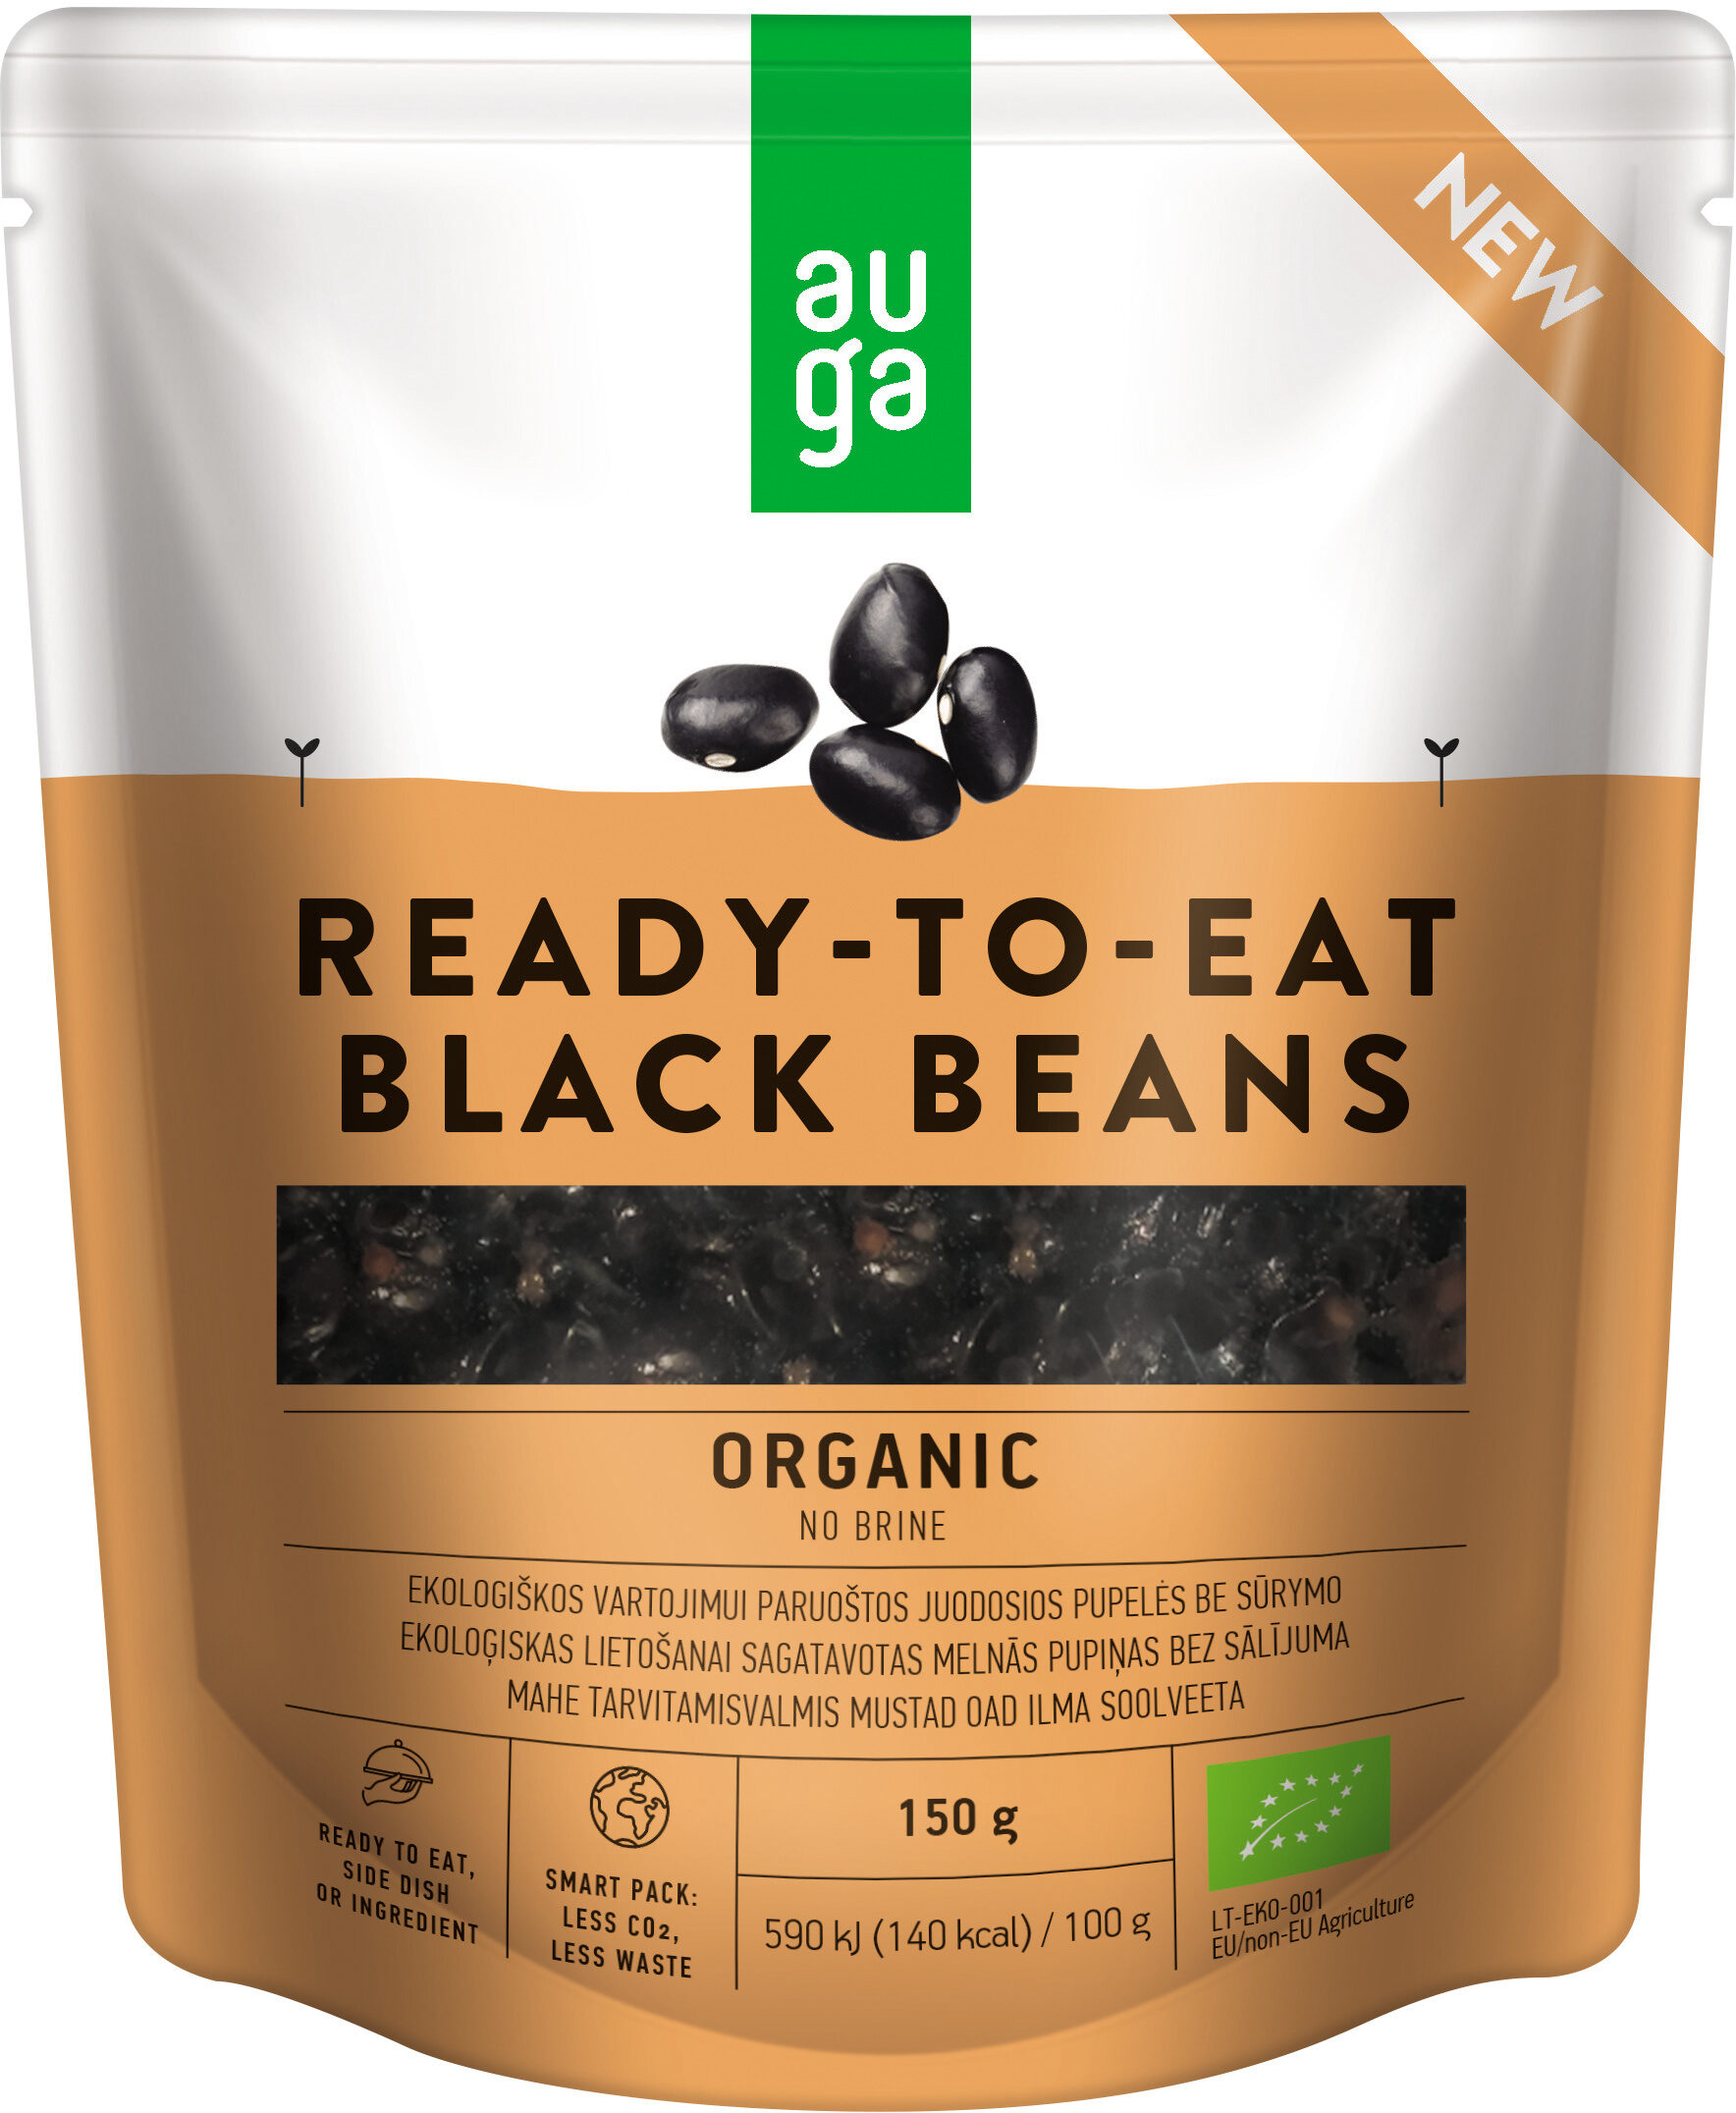 Ready-To-Eat Black Beans - Product - en